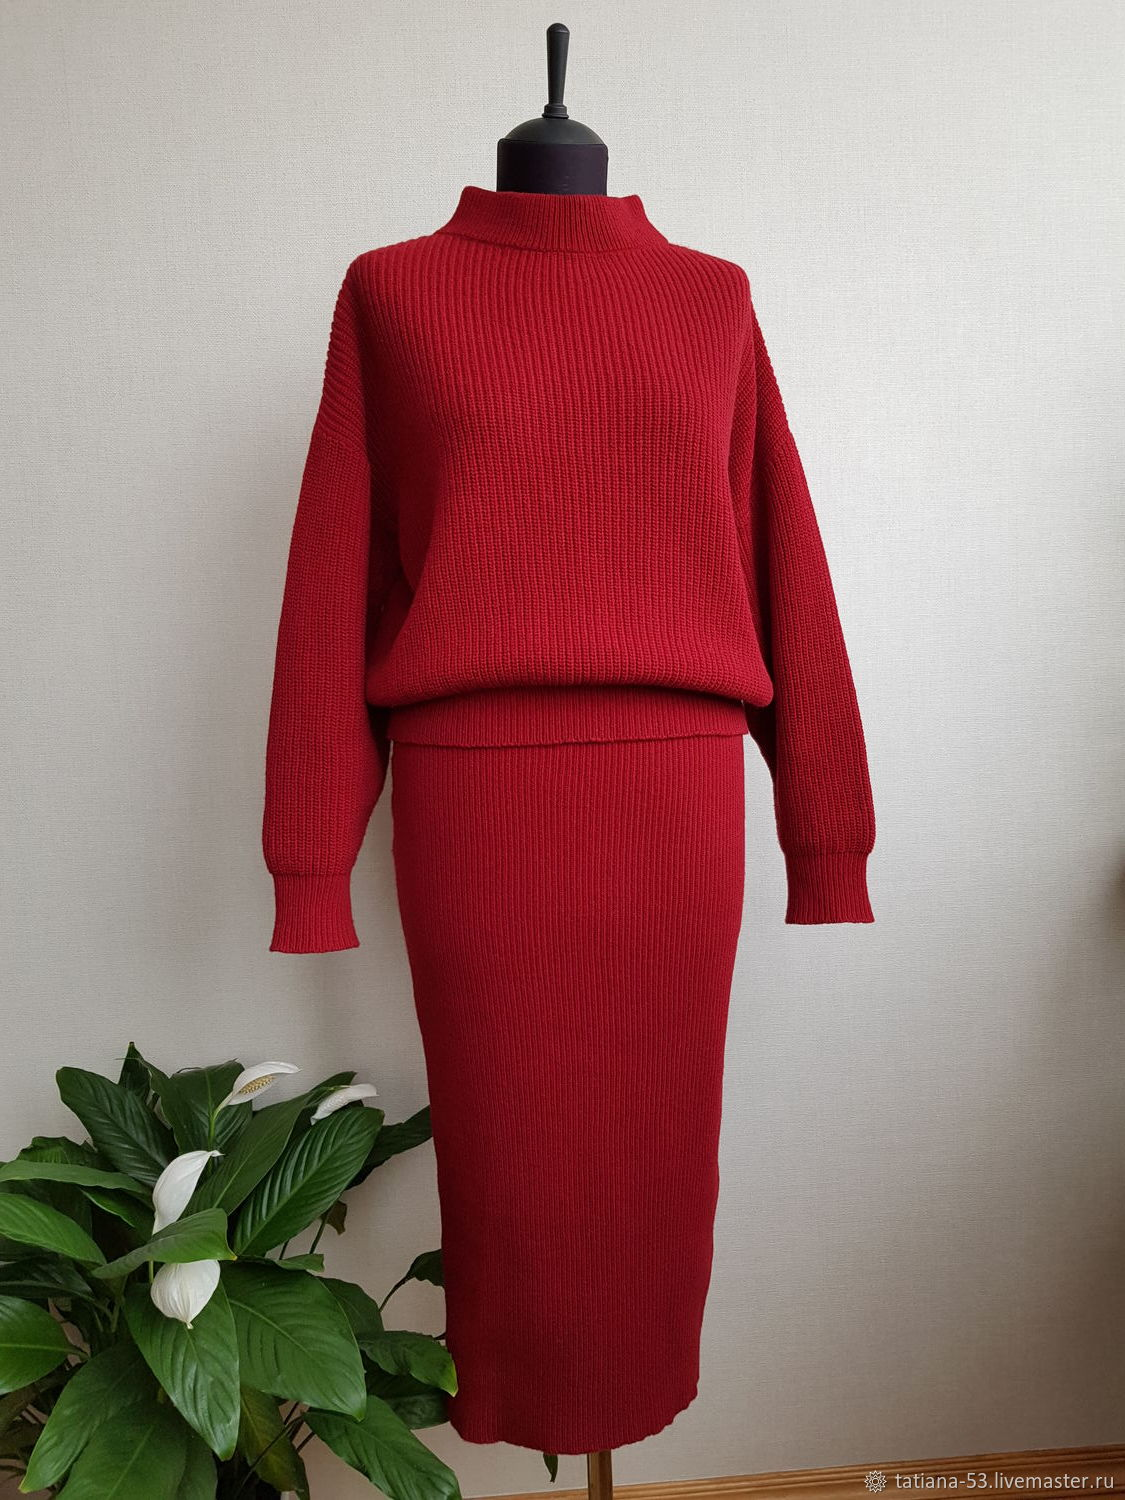 Burgundy knitted suit, Suits, Moscow,  Фото №1